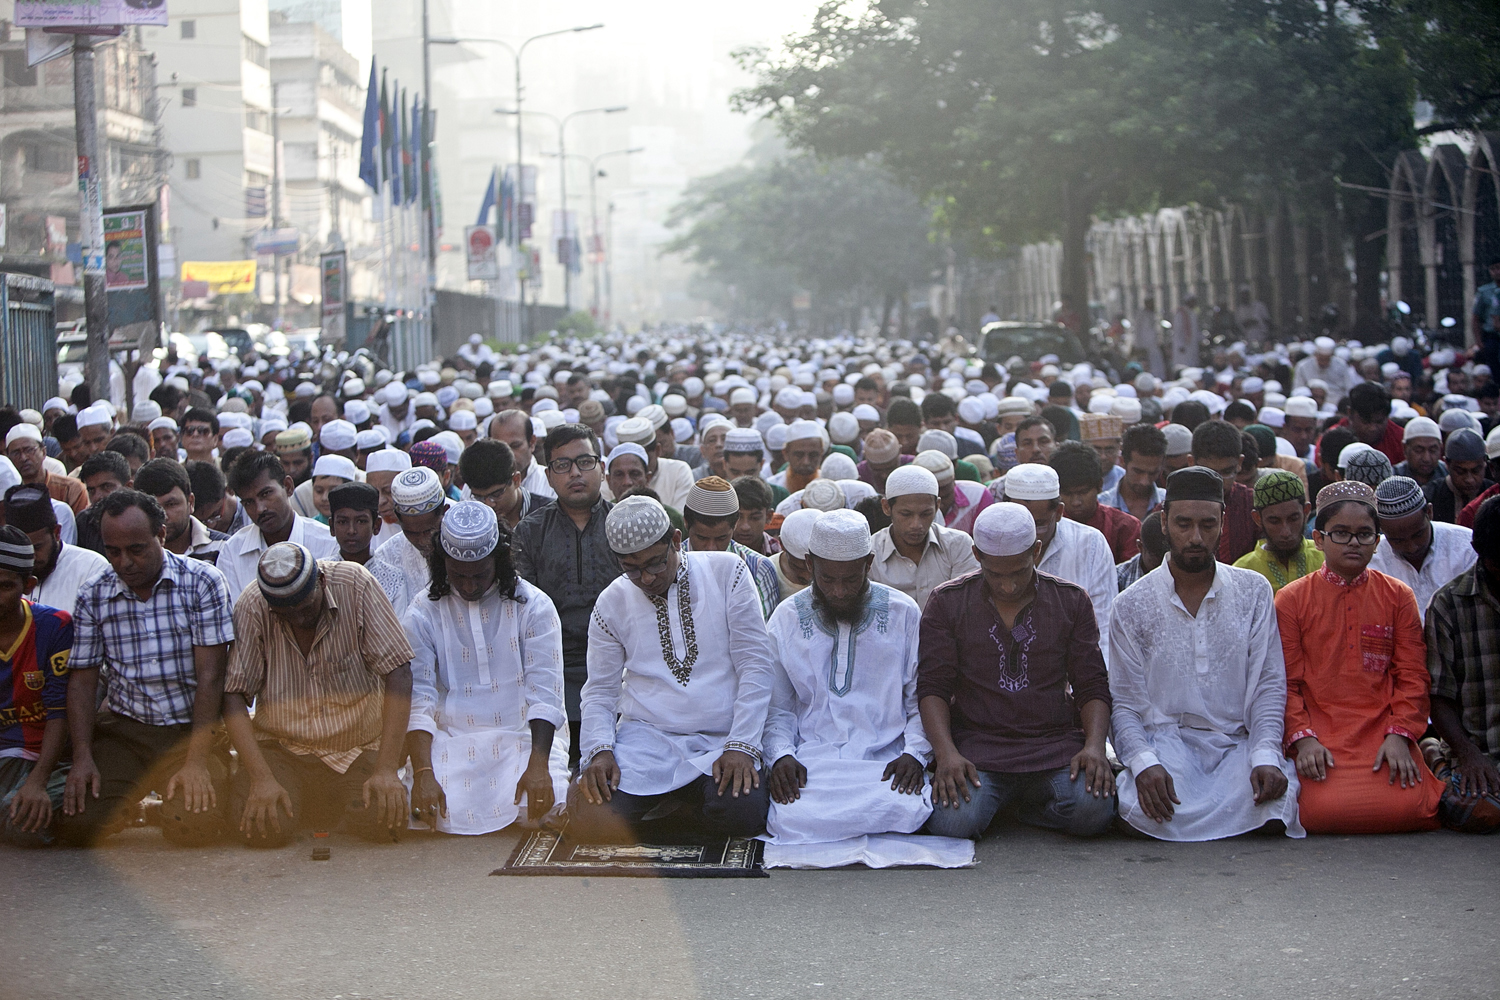 Bangladeshi Muslimes Gather For Eid Al-Adha Celebrations